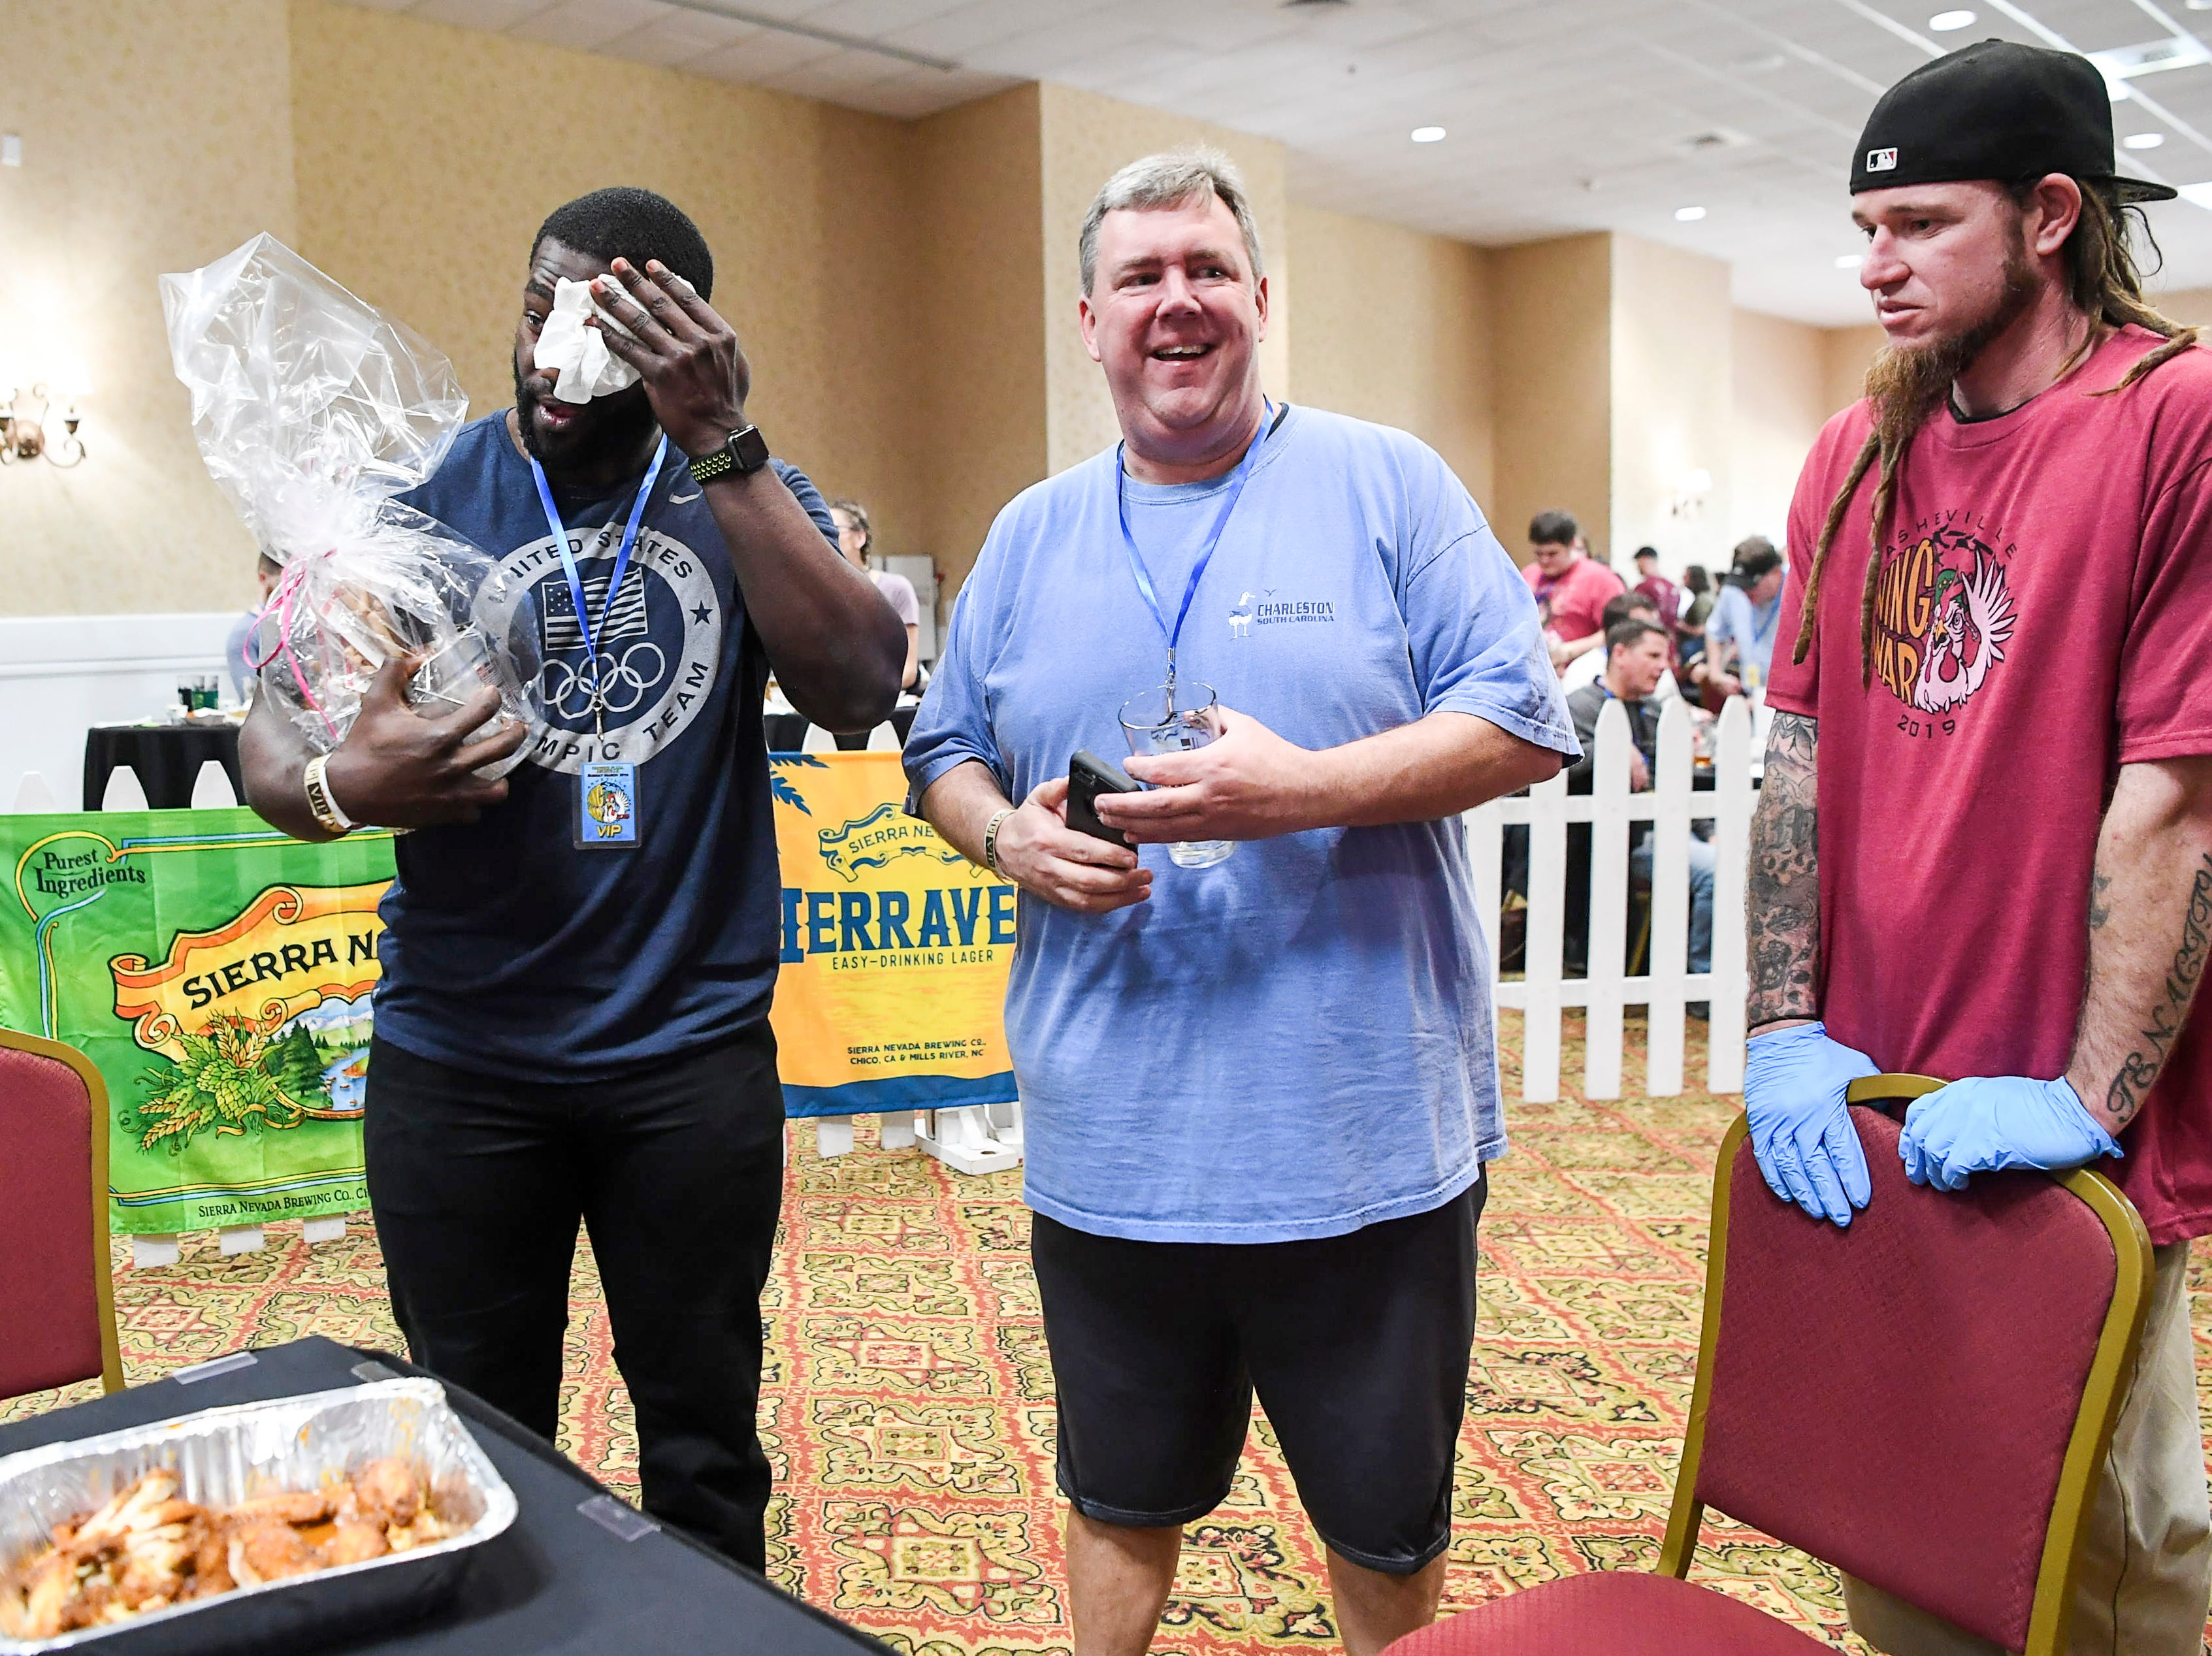 Thousands of chicken wings were battered, fried and sauced during the 8th annual Asheville Wing War at the Crowne Plaza March 10, 2019 in Asheville.